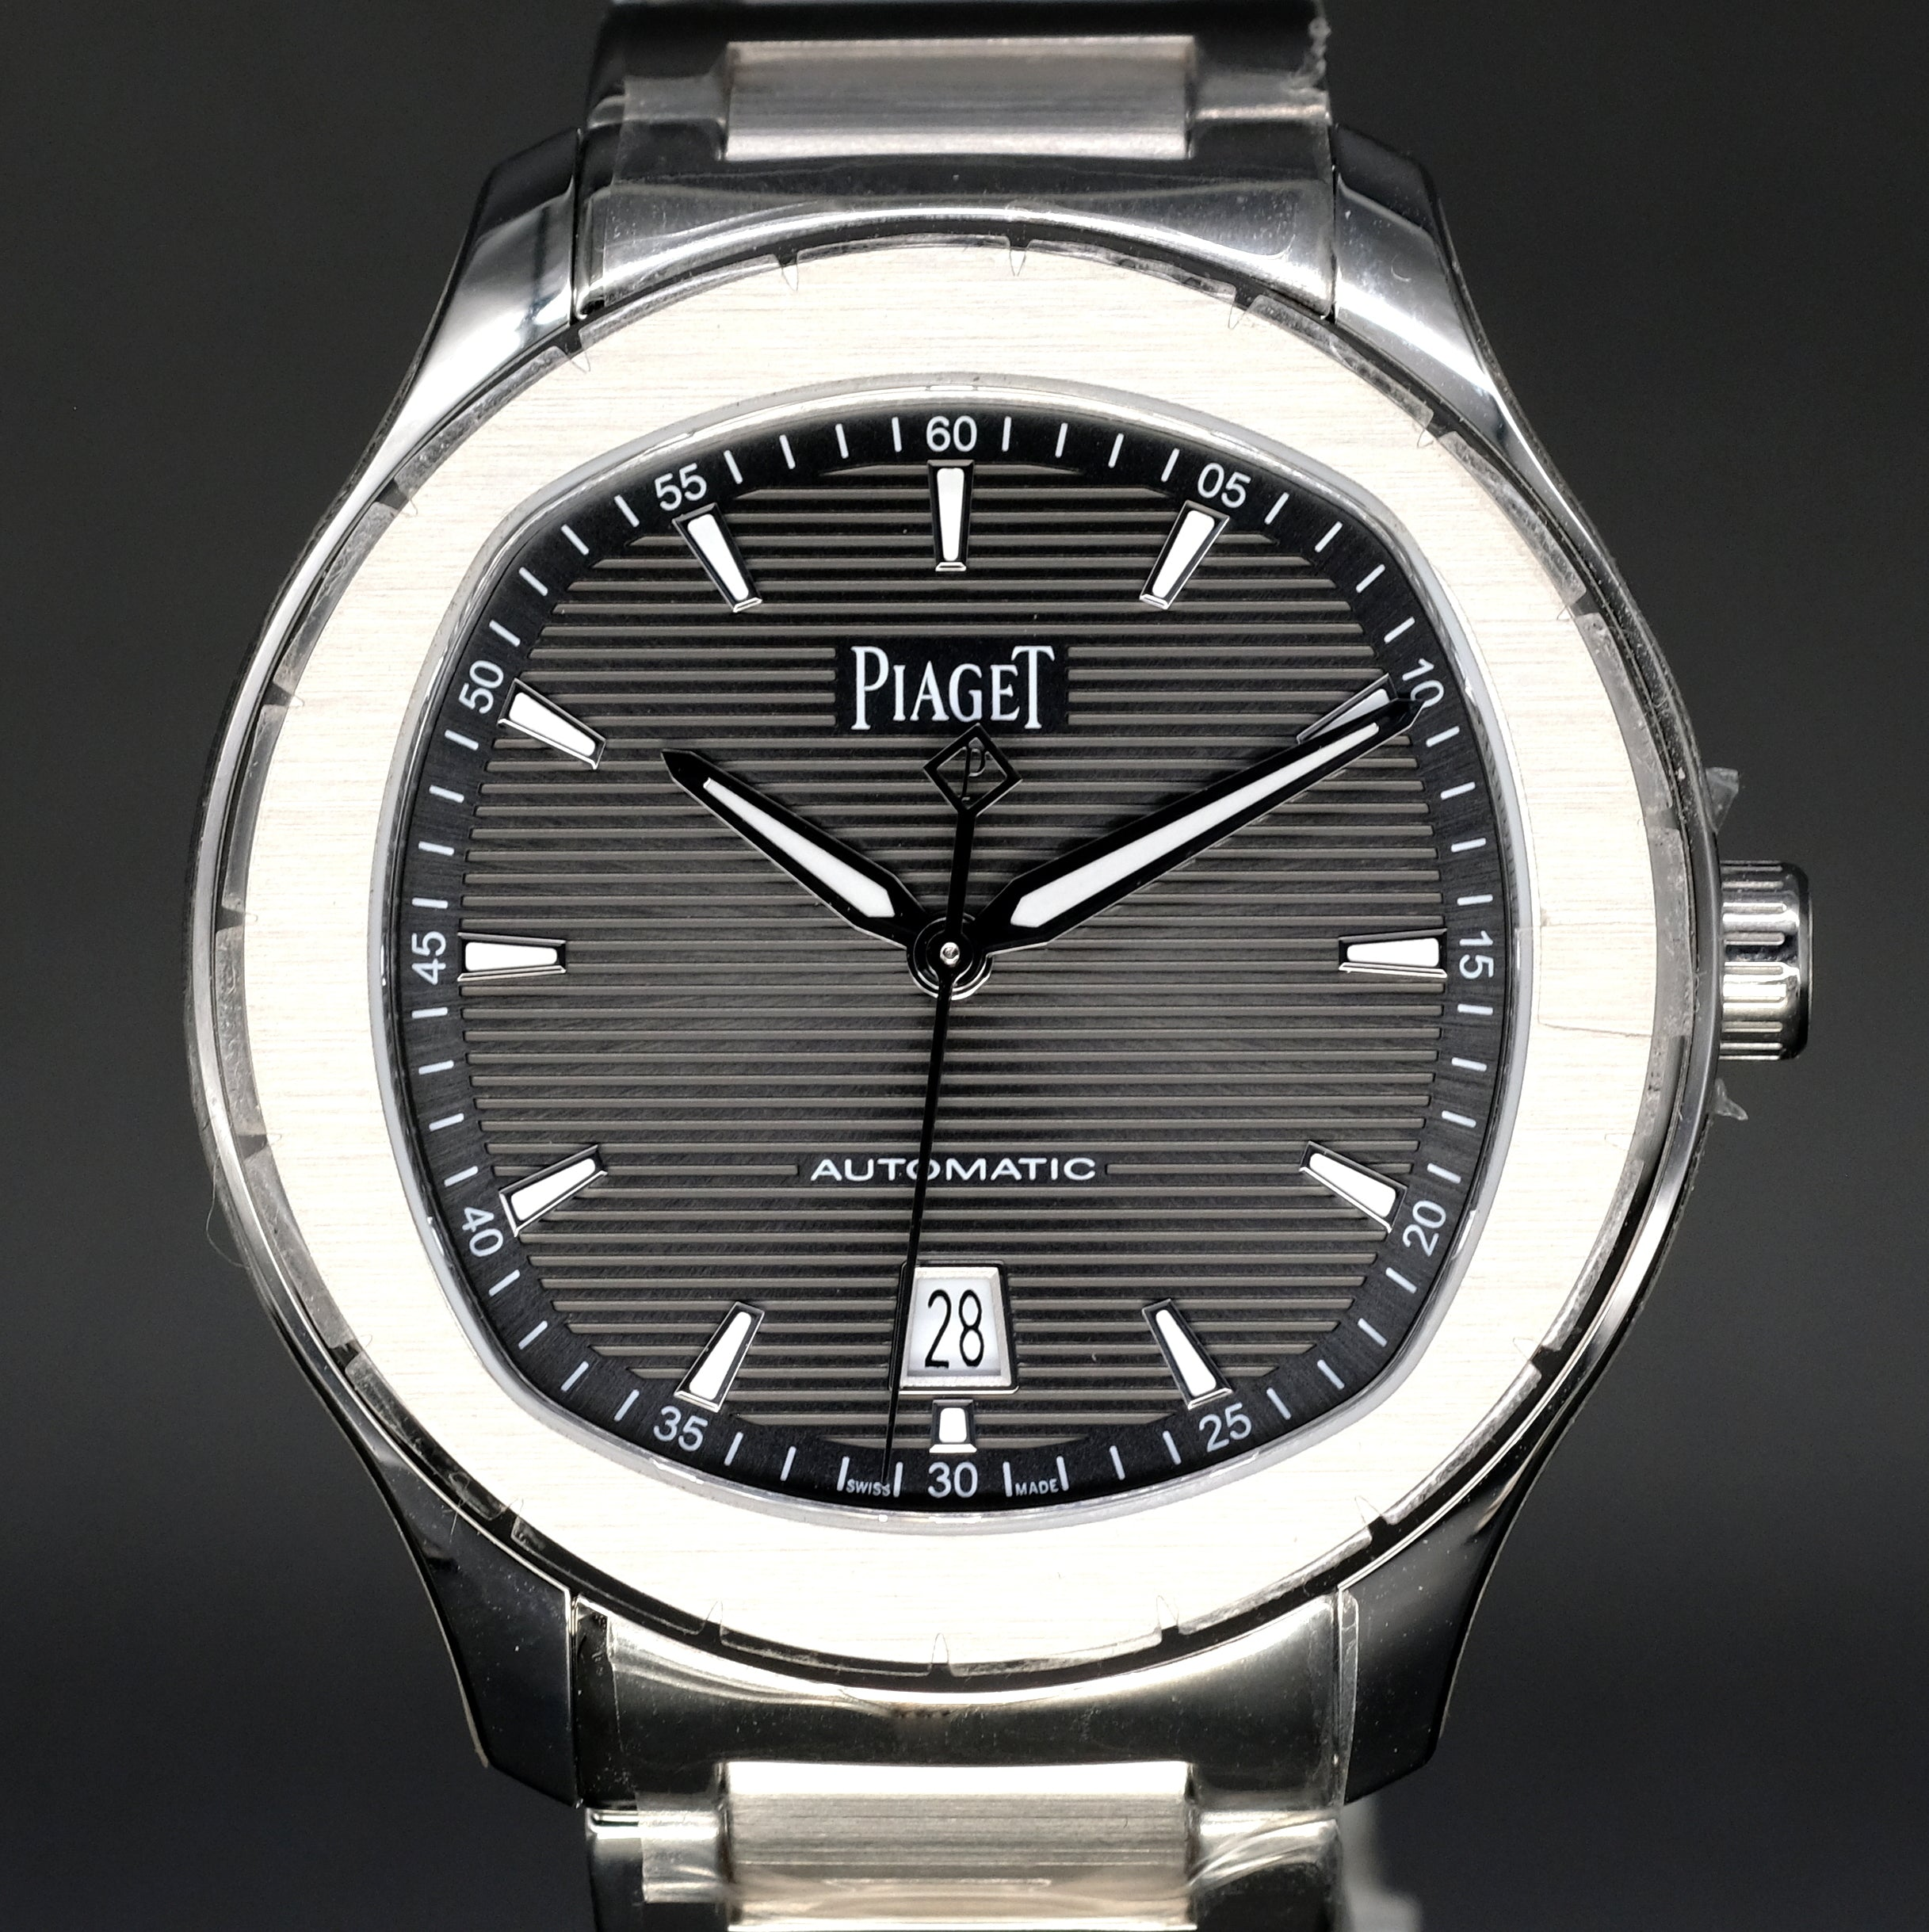 [Brand New Watch] Piaget Polo S Watch 42mm G0A41003